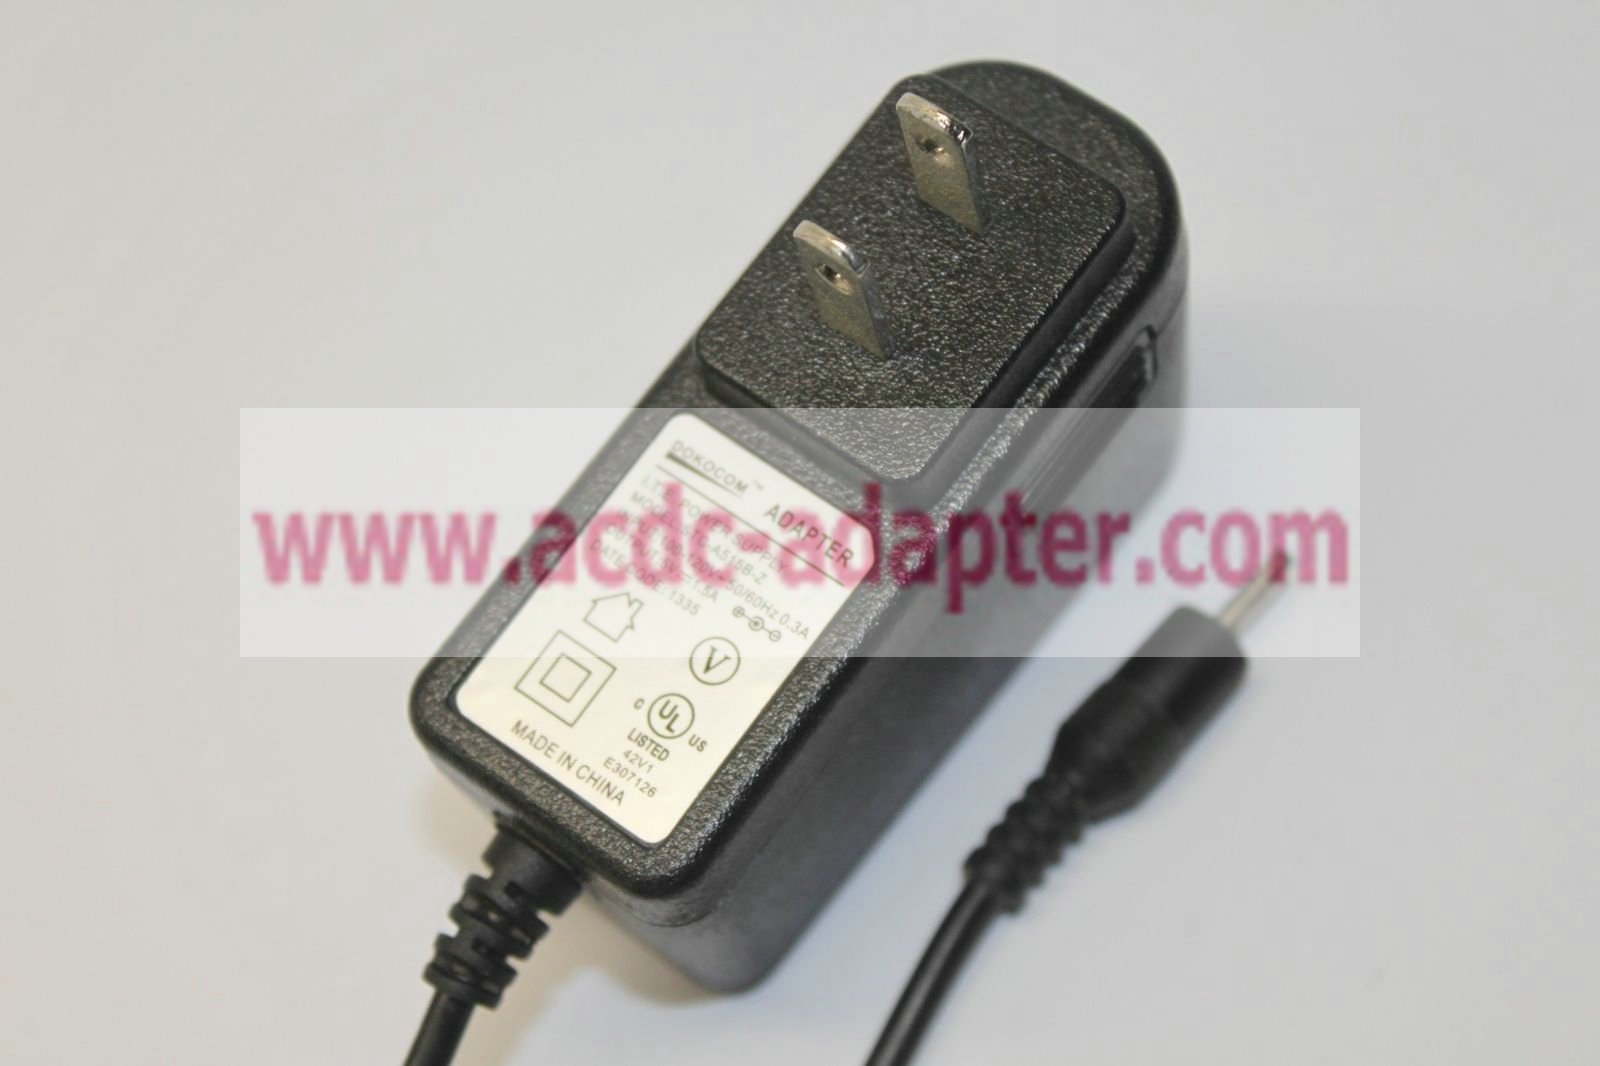 AC Adapter DC Power Supply Charger Cord For Dokocom STC-A515B-Z STC-A515B-2 ITE